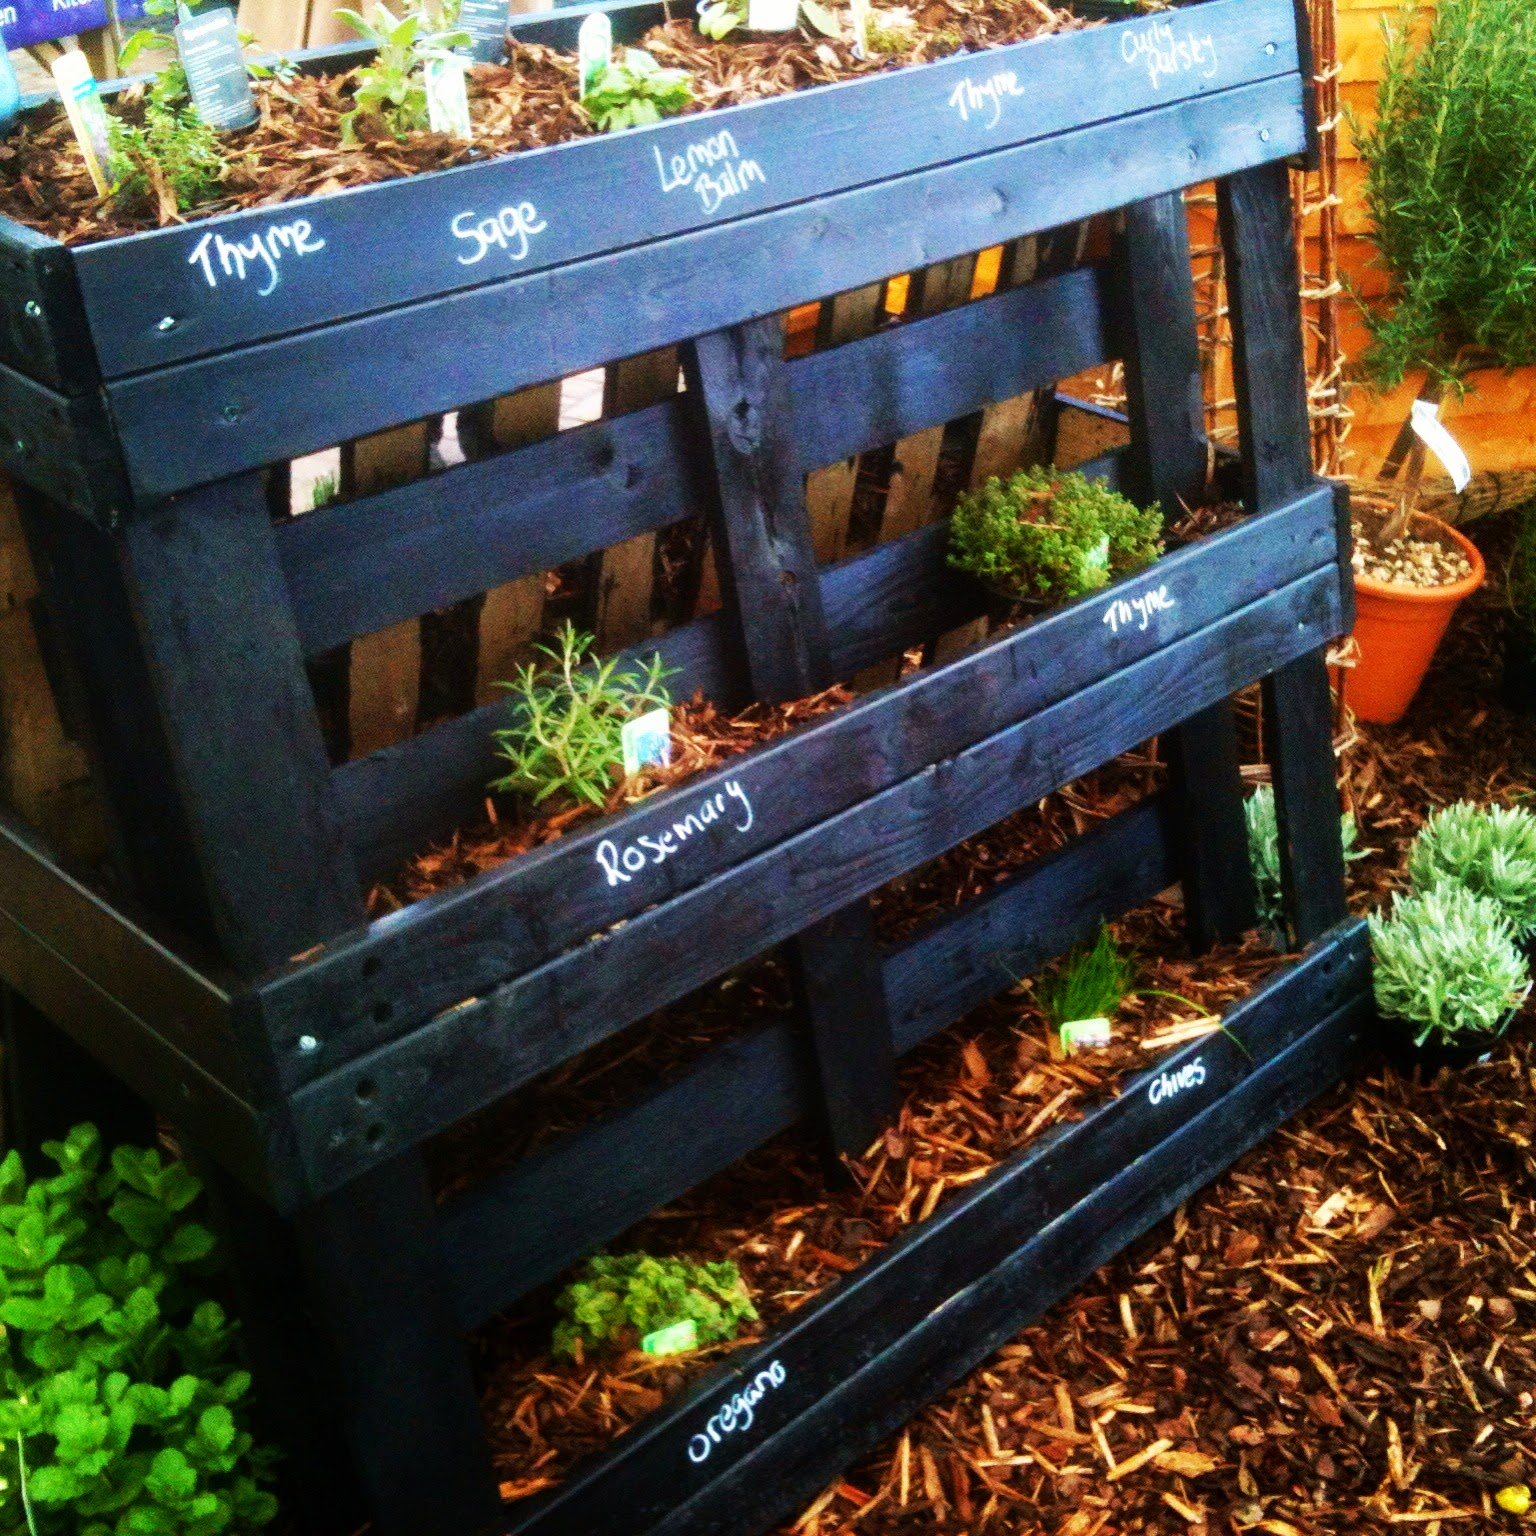 Pallets have uses in small spaces, think clever, think space #lifeonpigrow